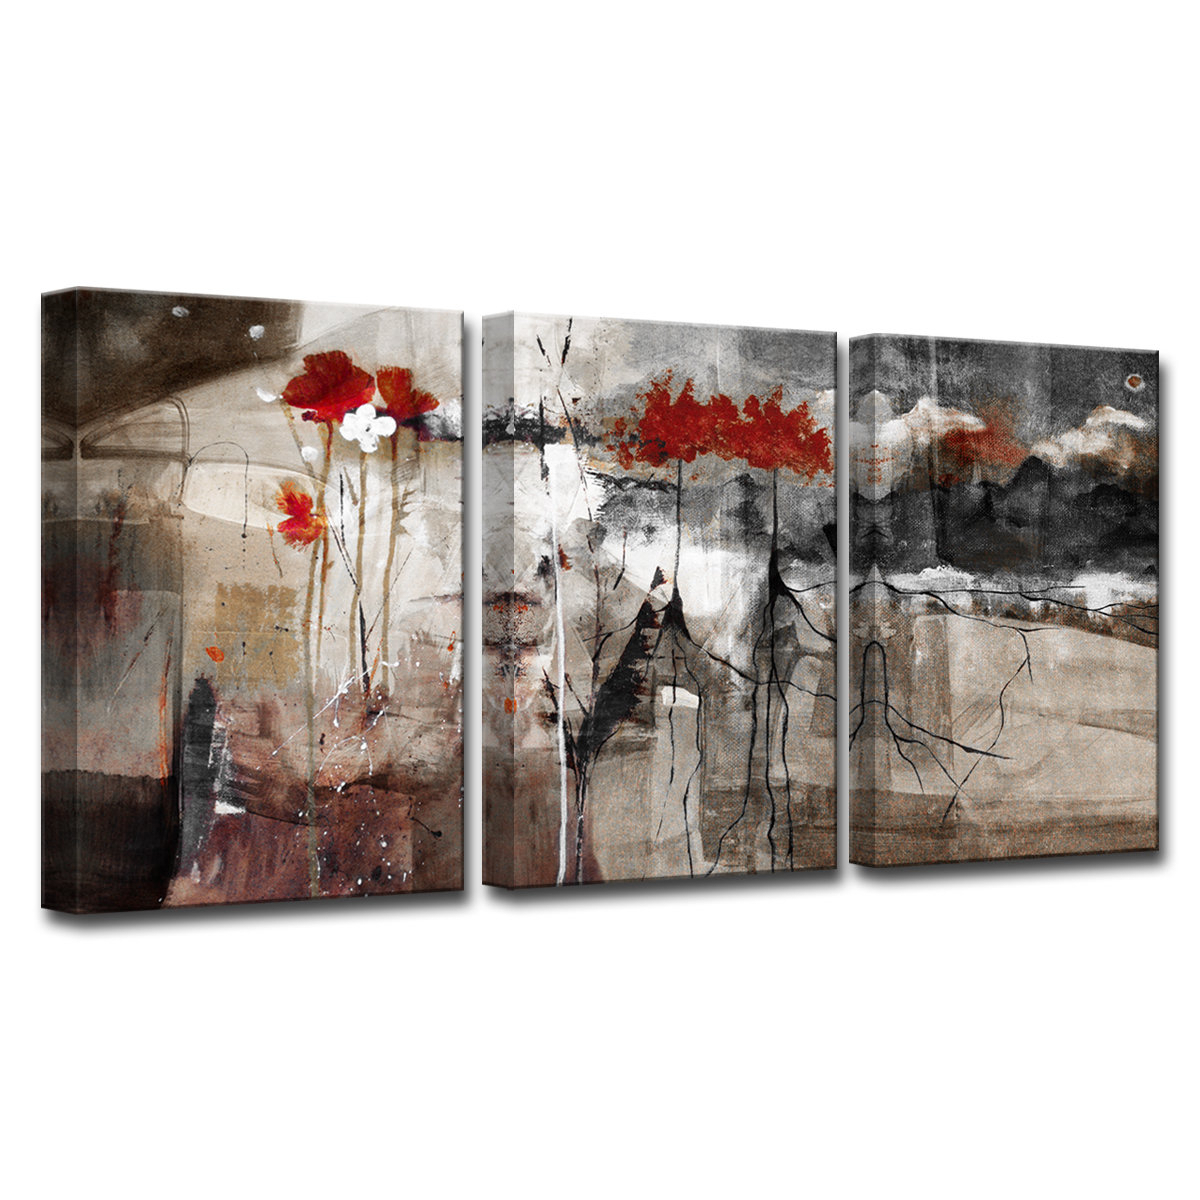 2019 Best Of 3 Piece Wall Decor Setswrought Studio with regard to 3 Piece Wall Decor Sets by Wrought Studio (Image 10 of 30)